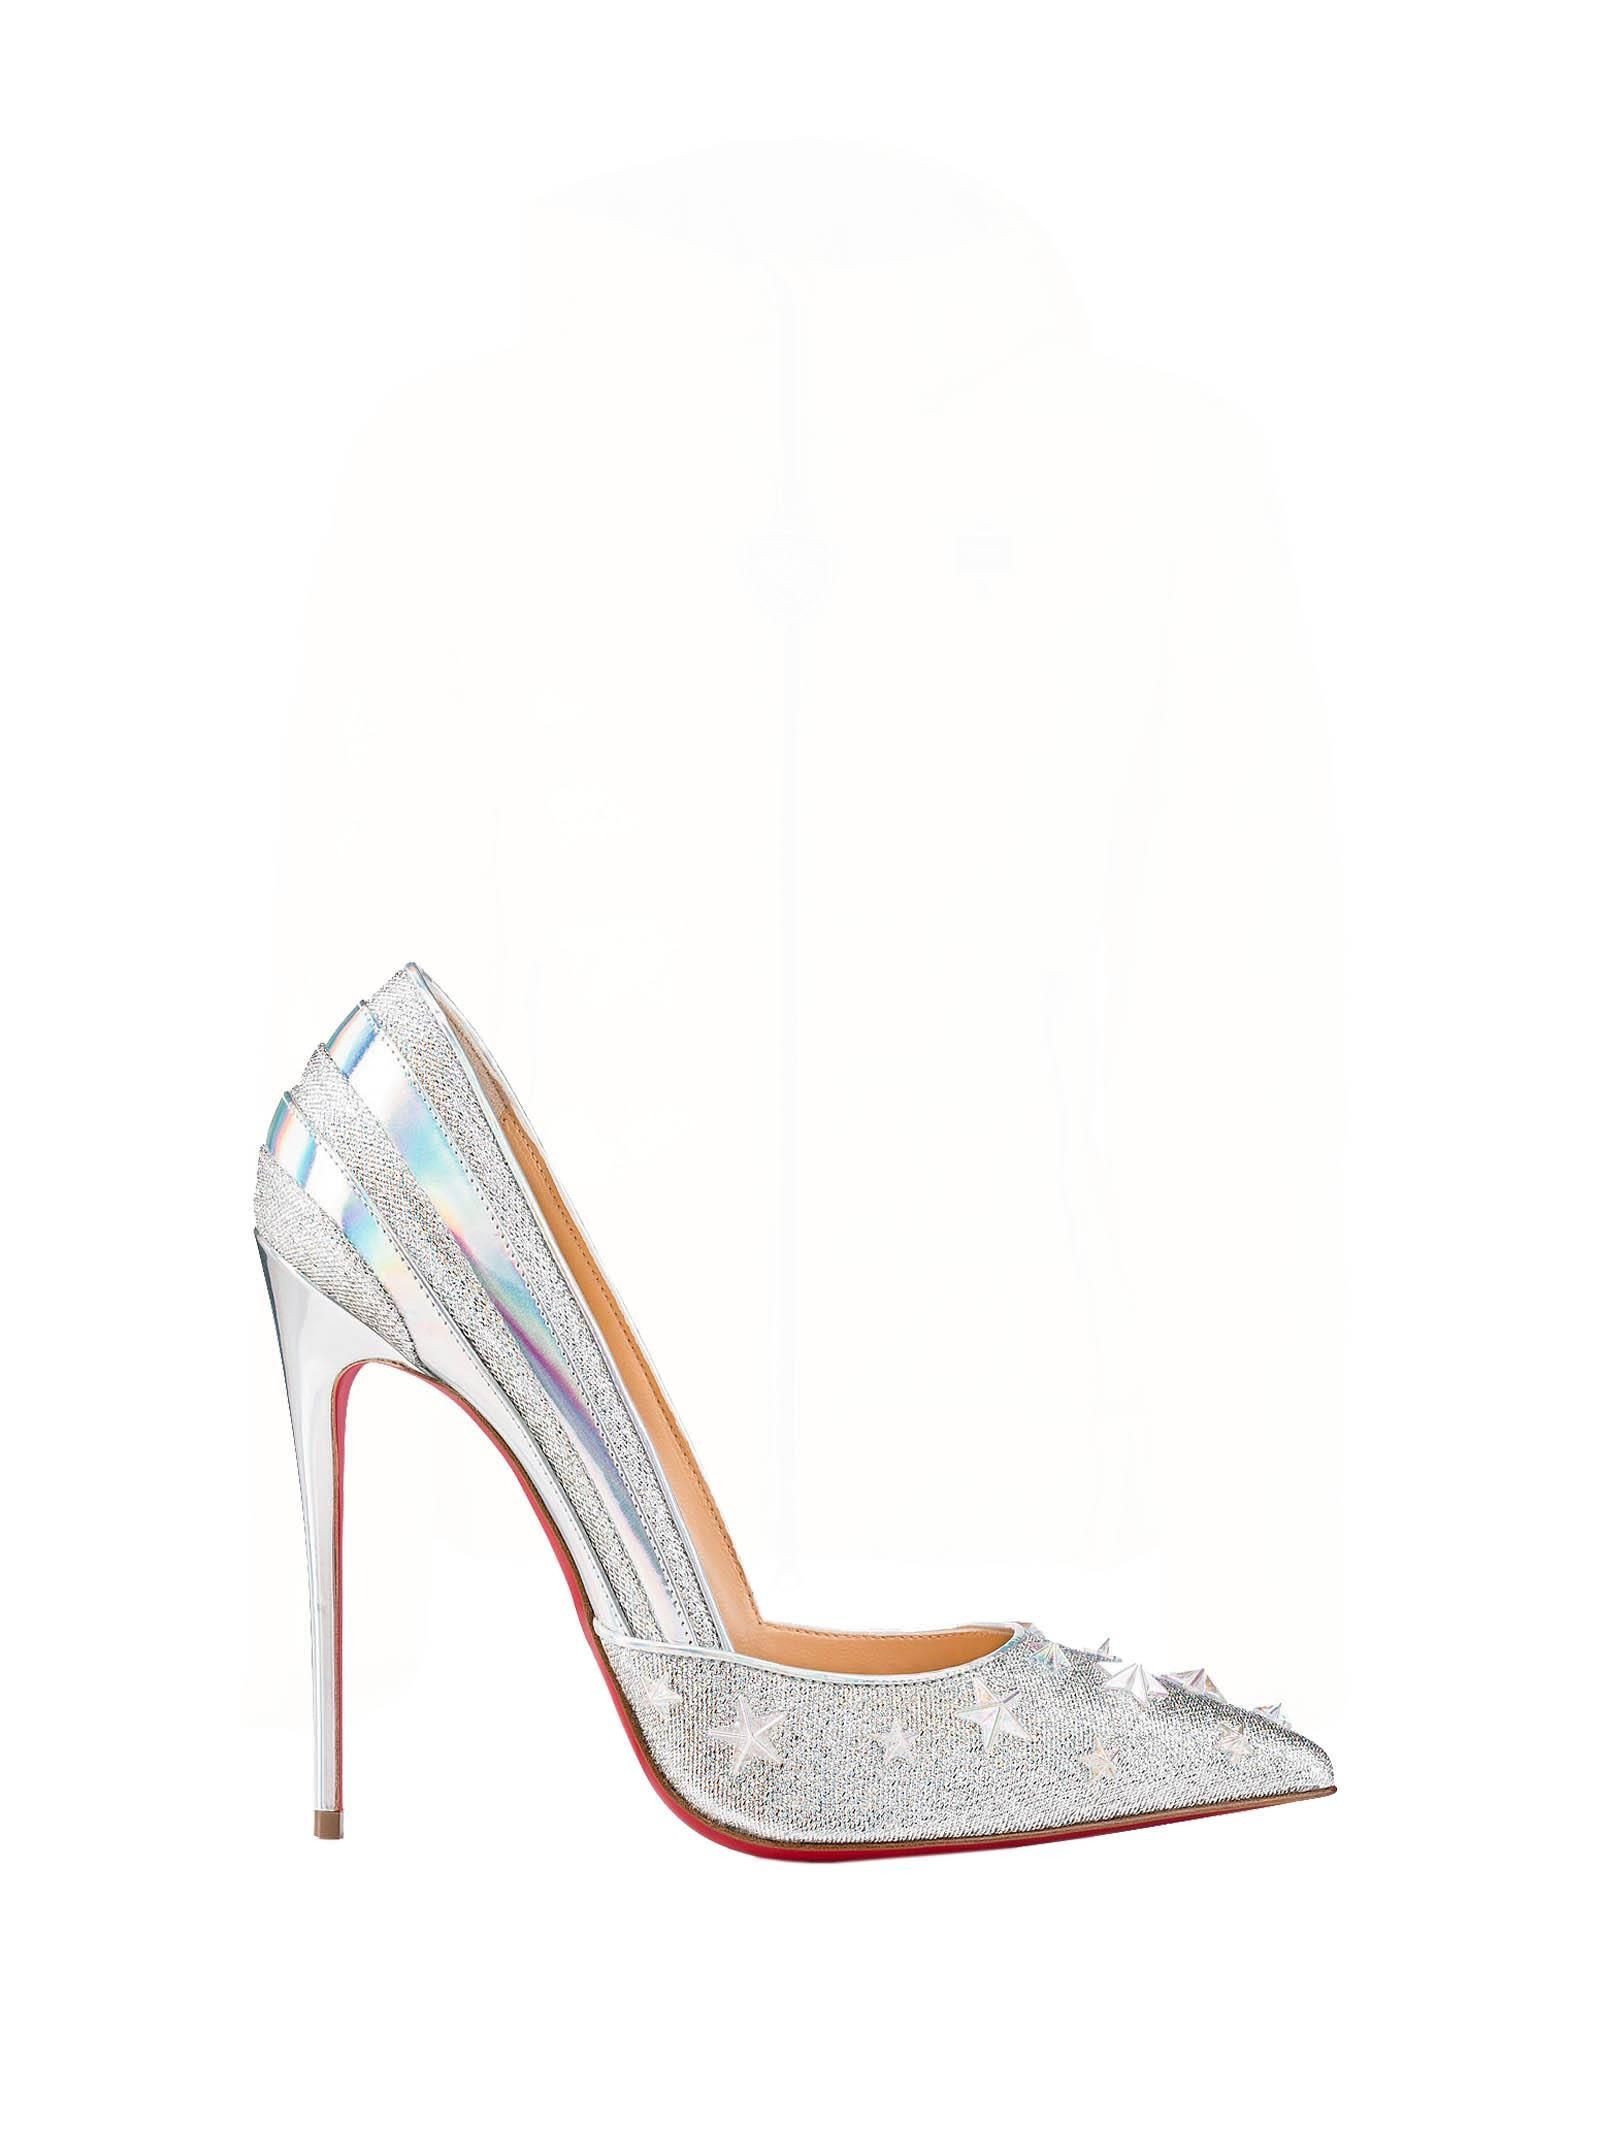 5a20ea8f0870 Ready-to-Wear Report  Christian Louboutin Fall 2018 Collection at  Italist.com